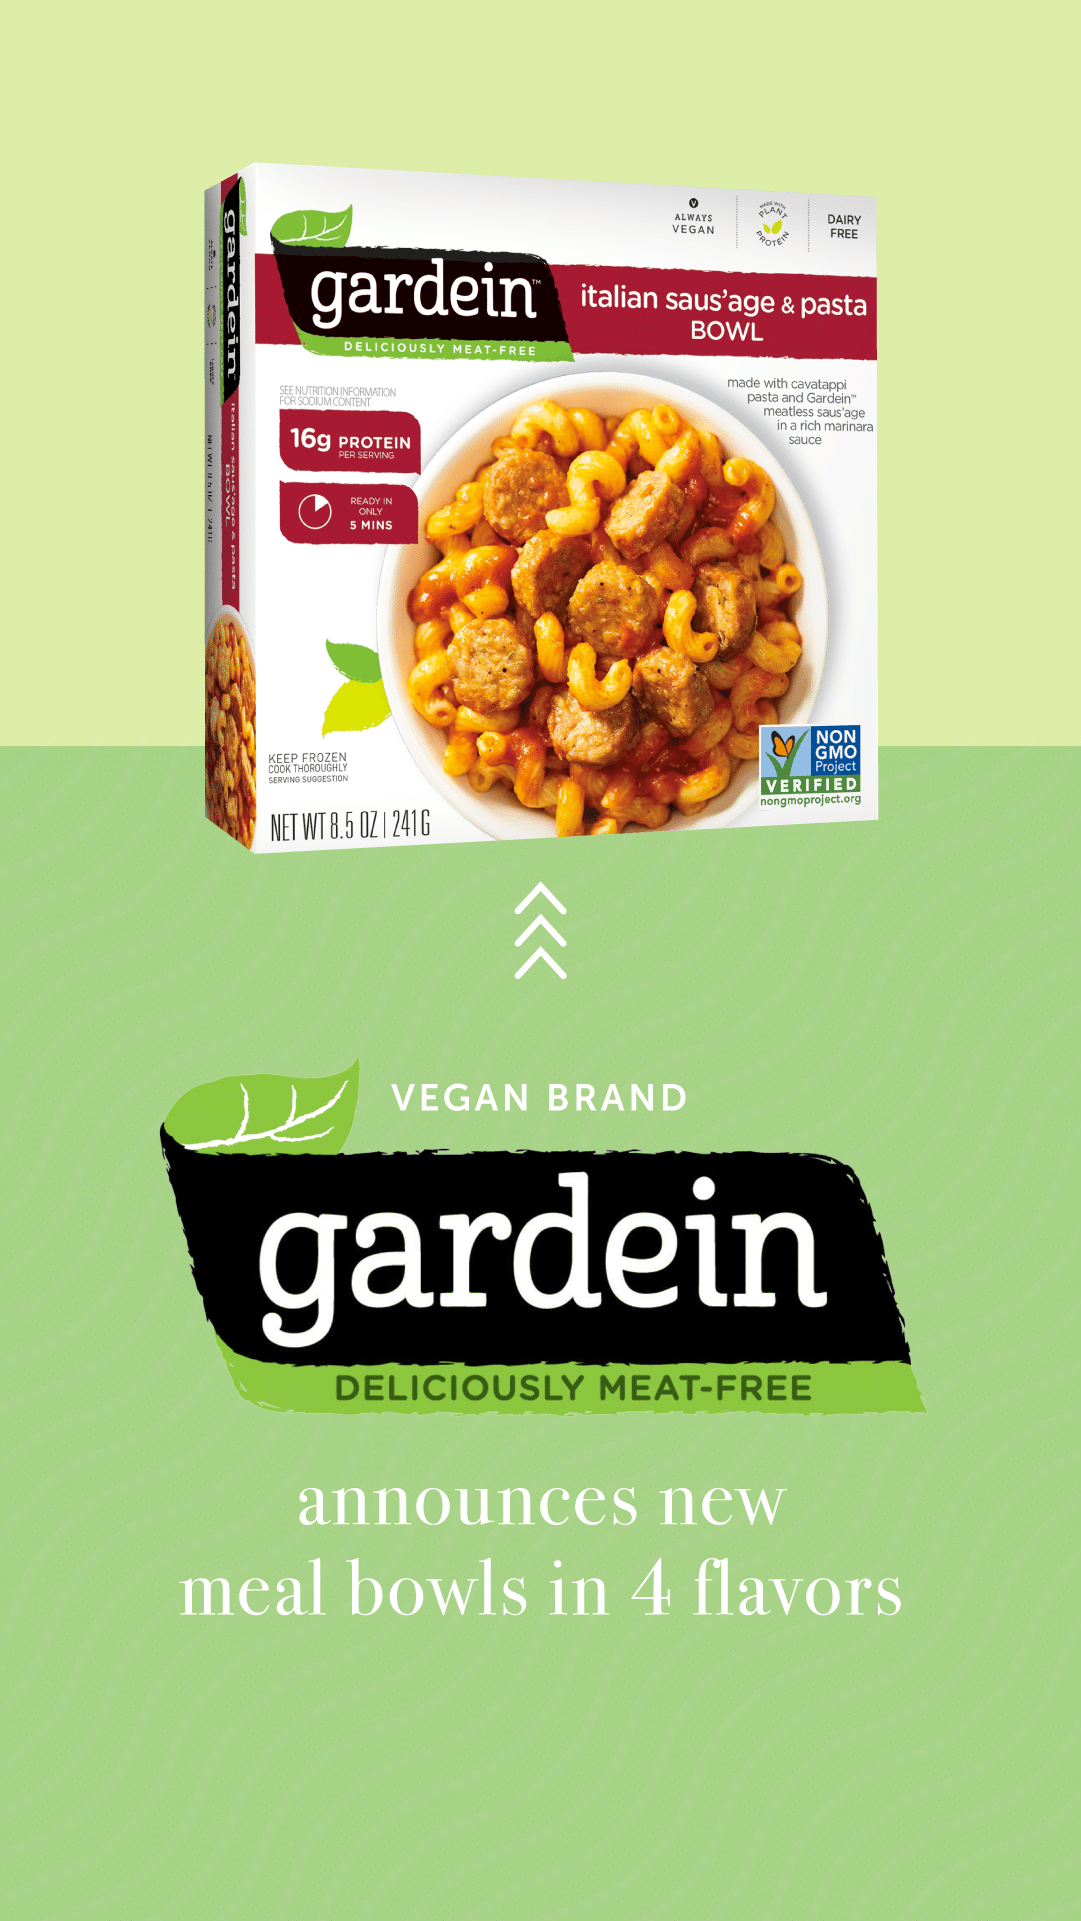 Vegan Brand Gardein Announces New Meal Bowls in Four Flavors